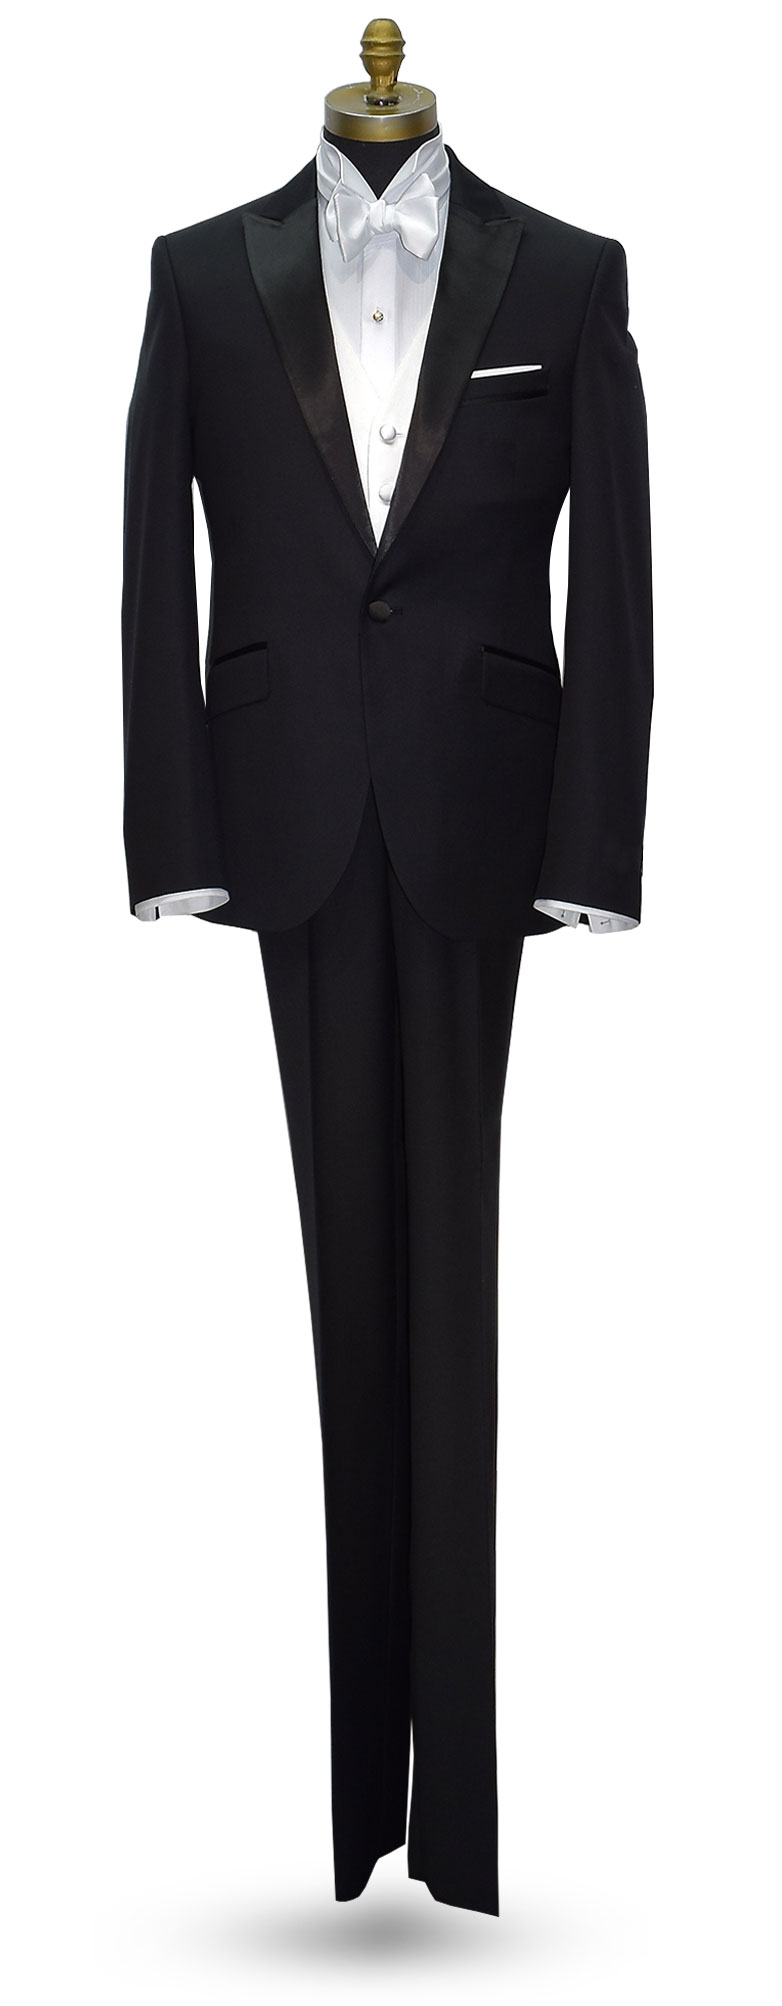 BLACK MEN'S PEAK LAPEL ULTRA SLIM FIT TUXEDO - COAT AND PANTS SET